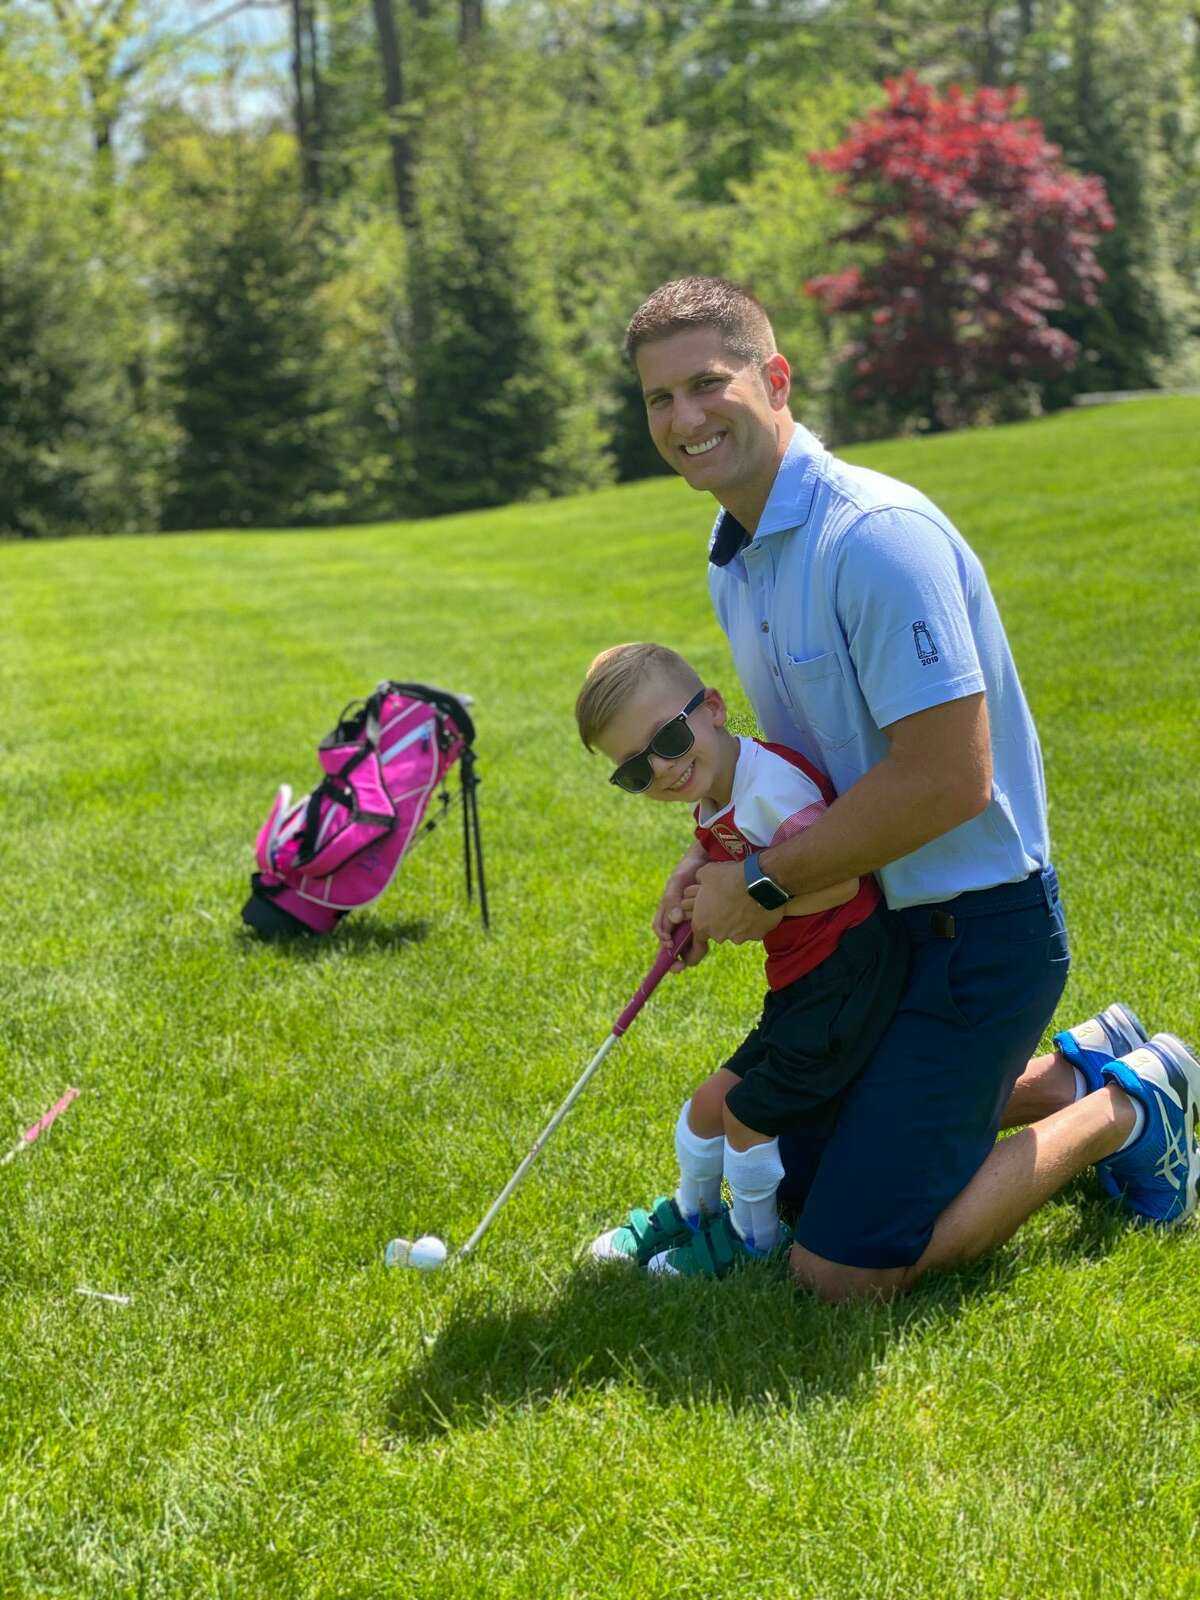 New Canaan's Carter Avellone plays from the rough with the help of his father, Peter. Carter is the subject of the Instagram page